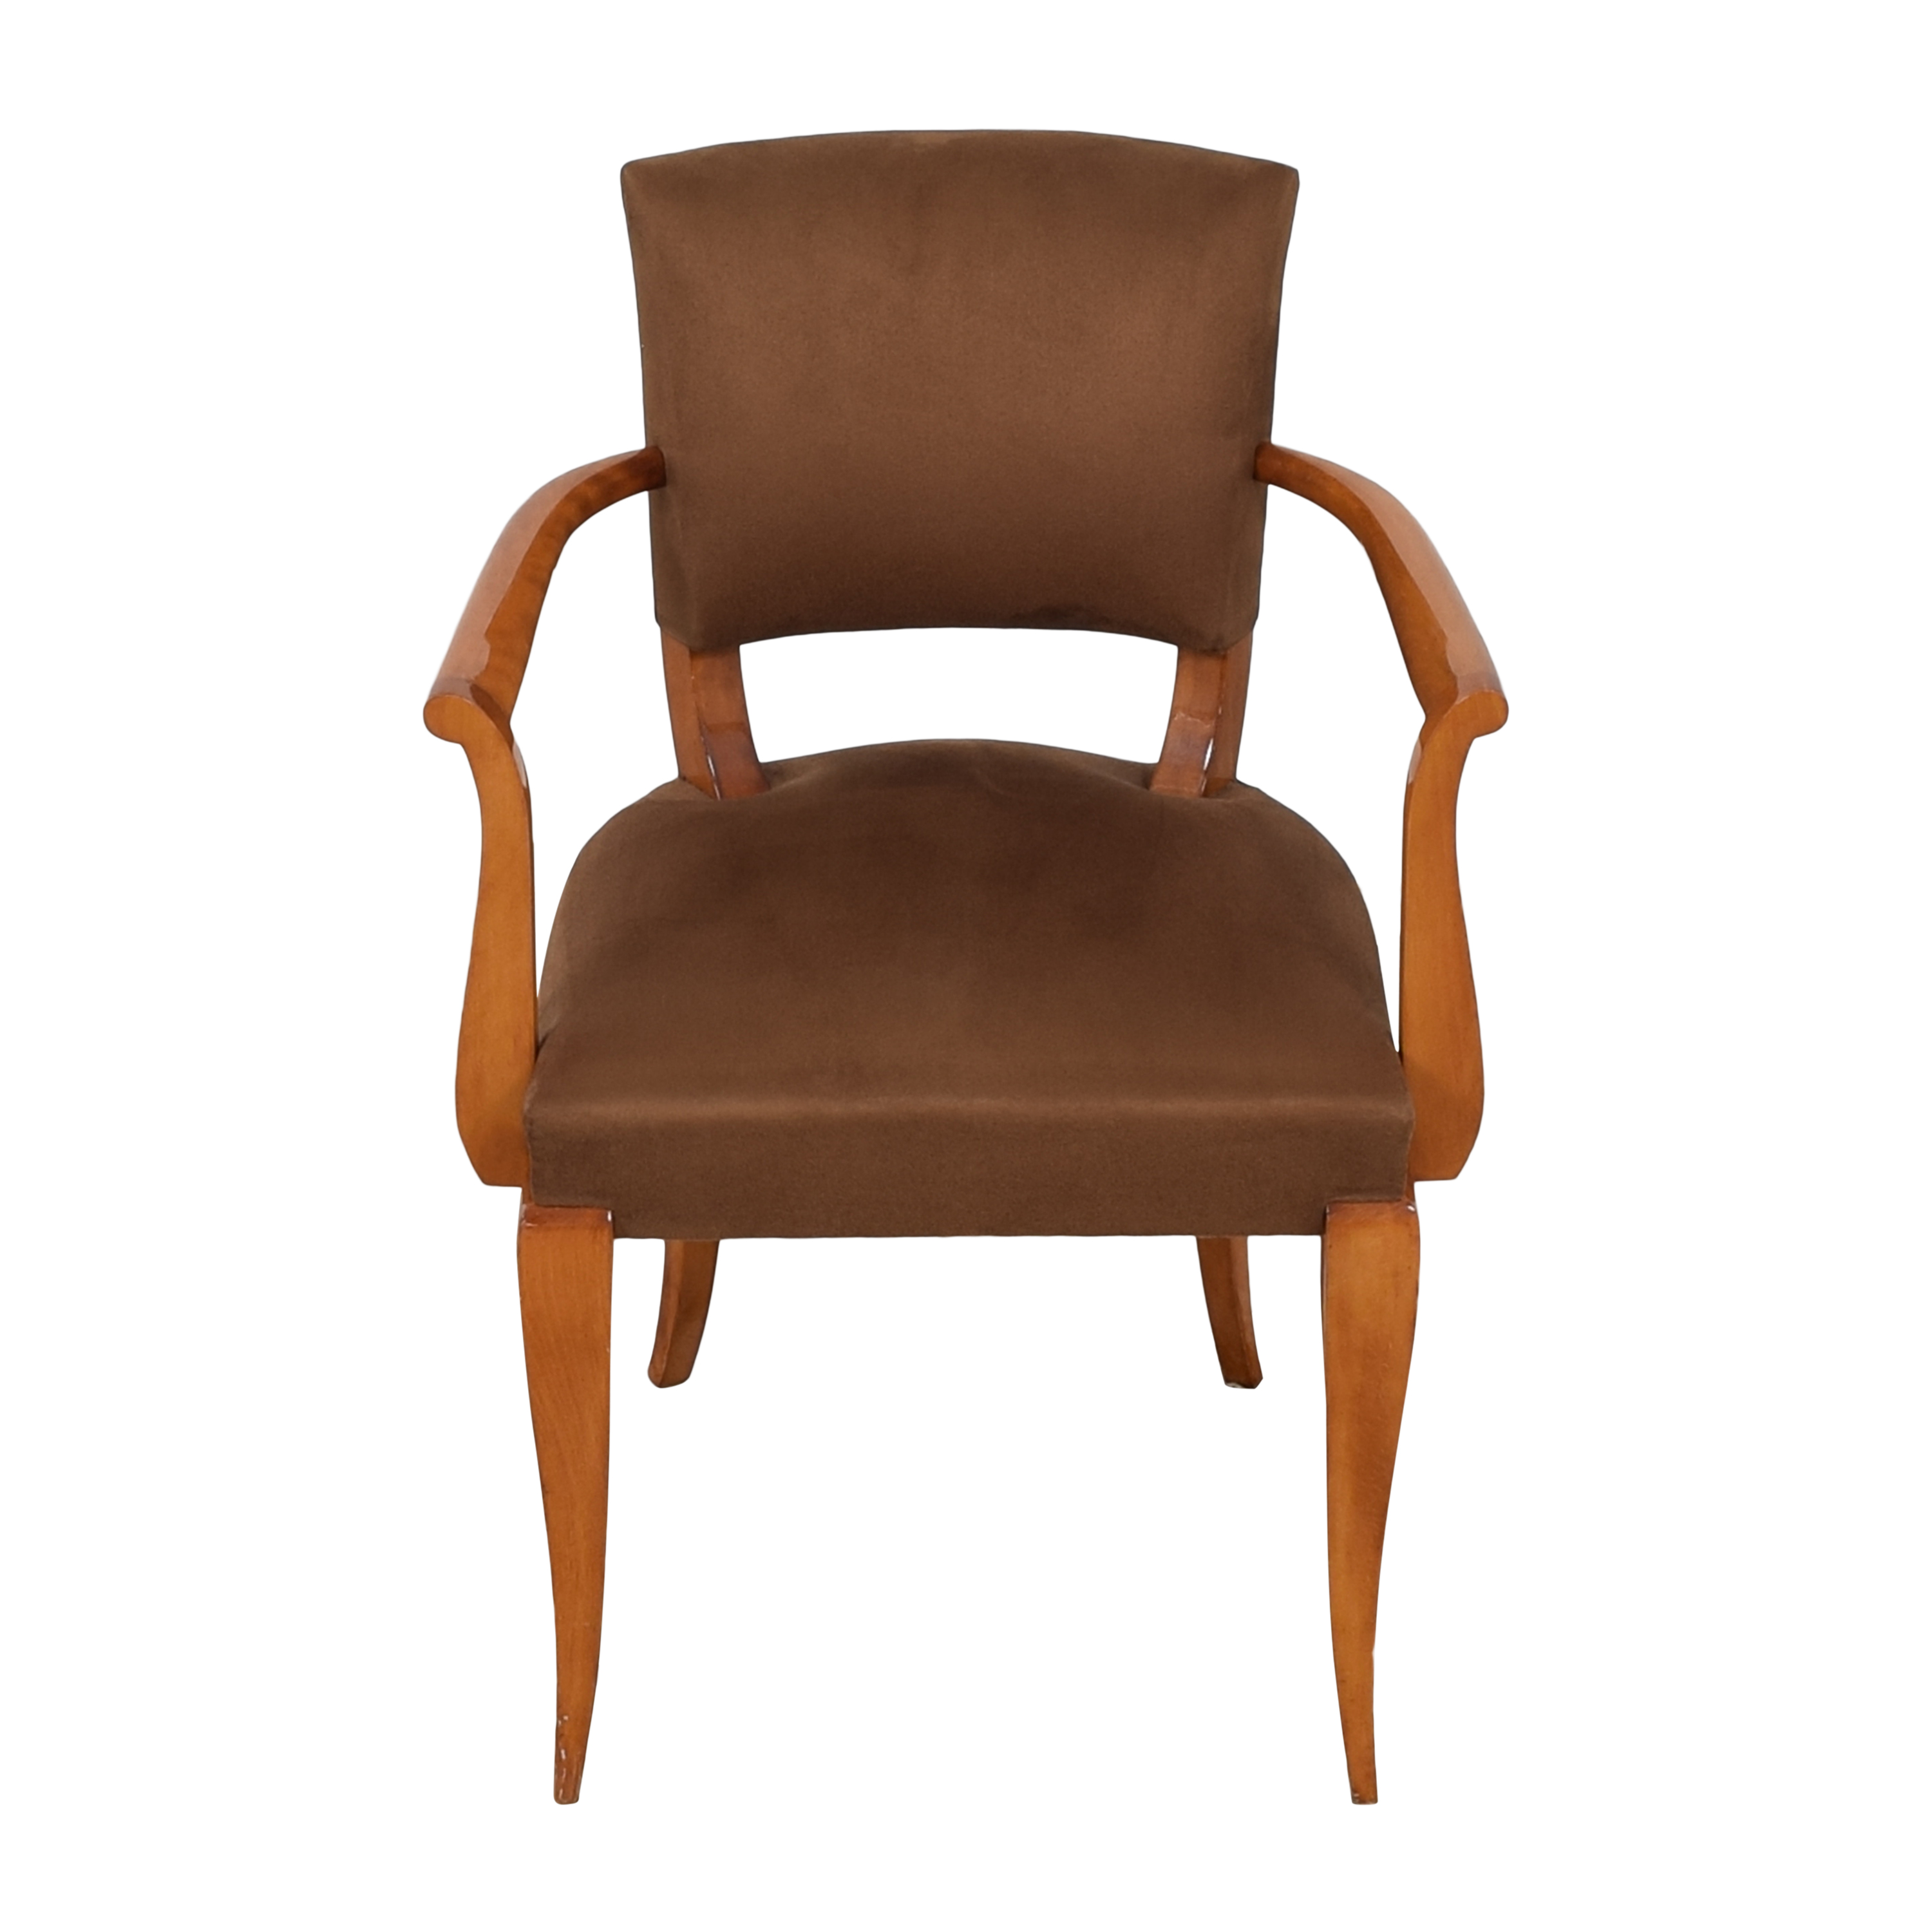 Upholstered Arm Chair dimensions